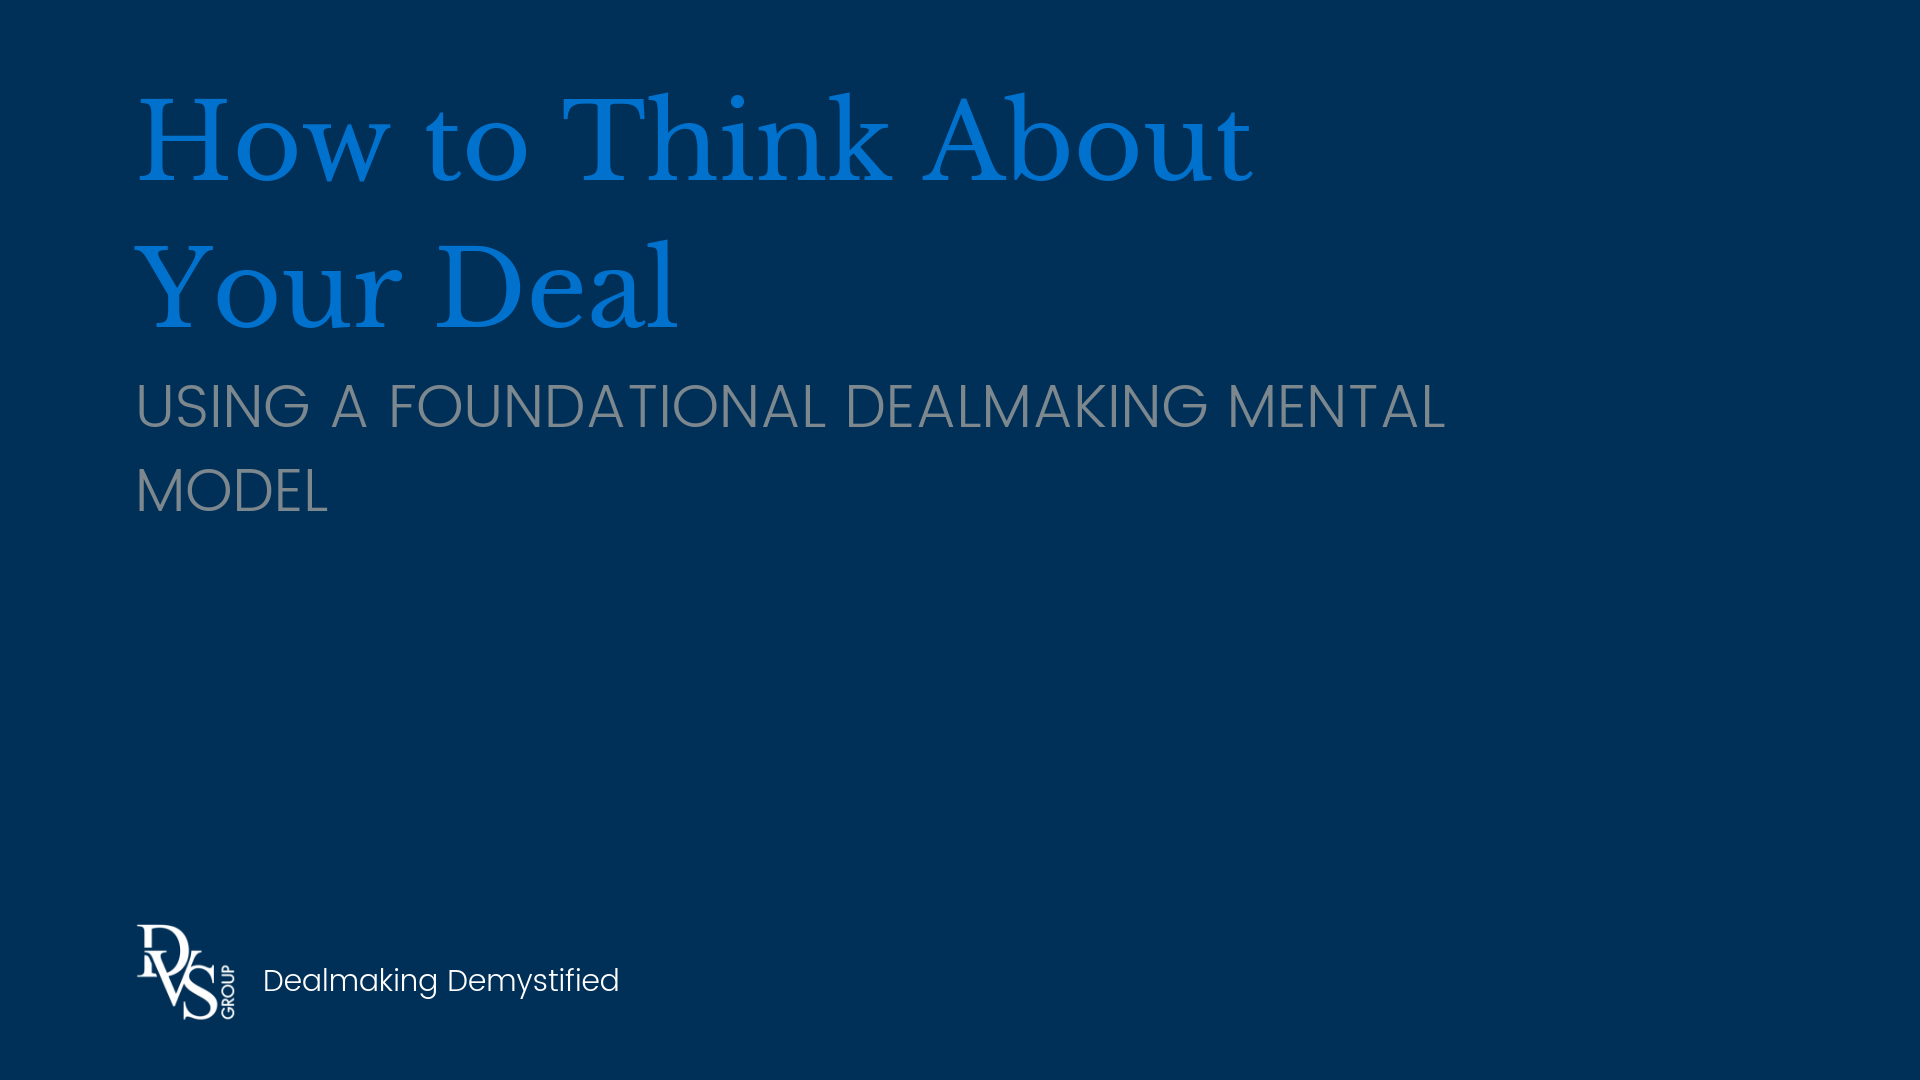 How to Think About Your Deal